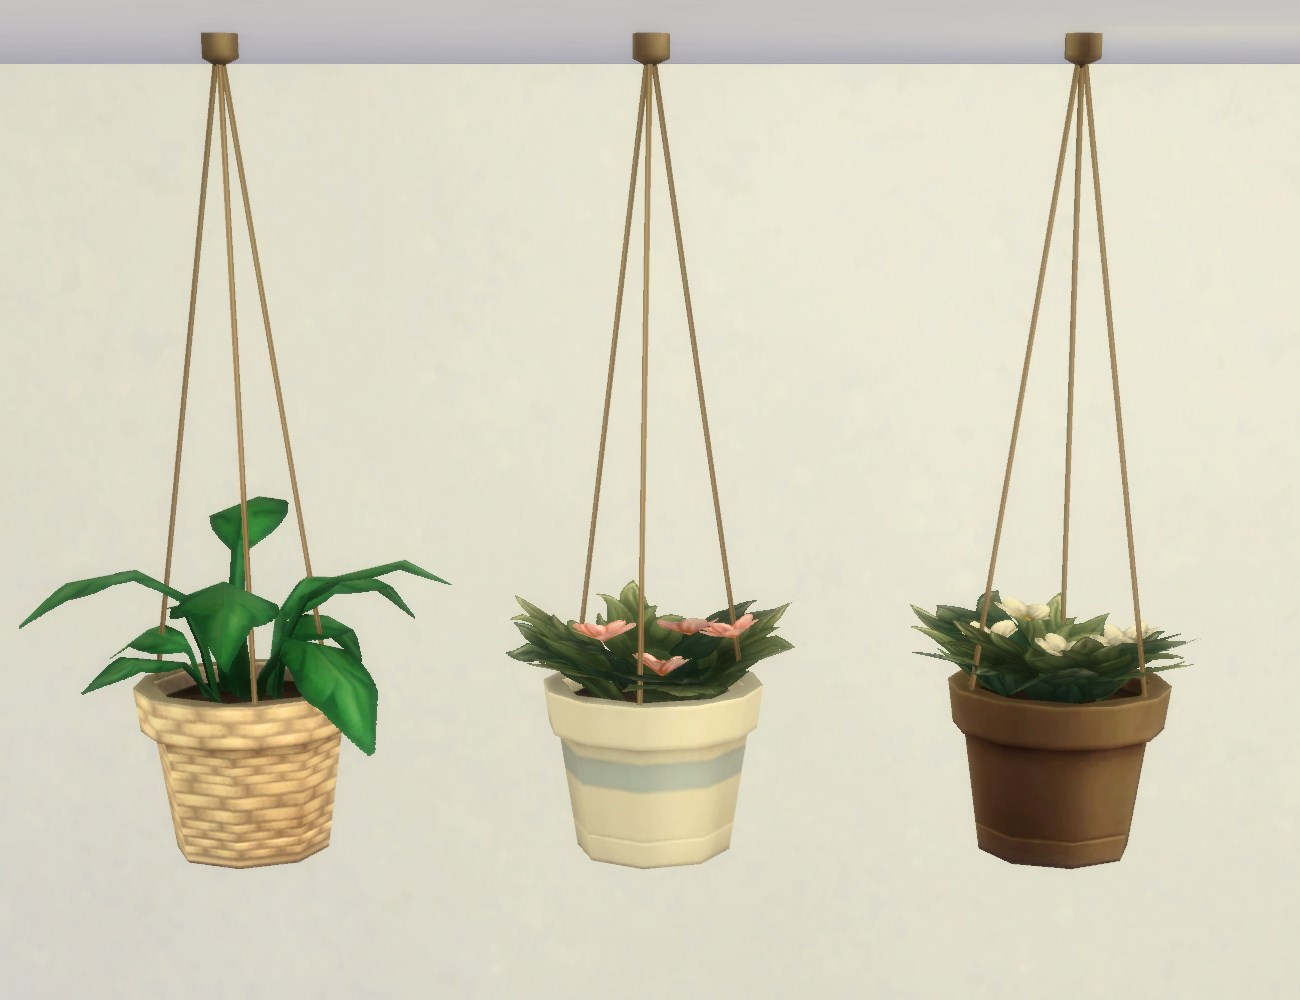 Modular Hanging Plants by plasticbox